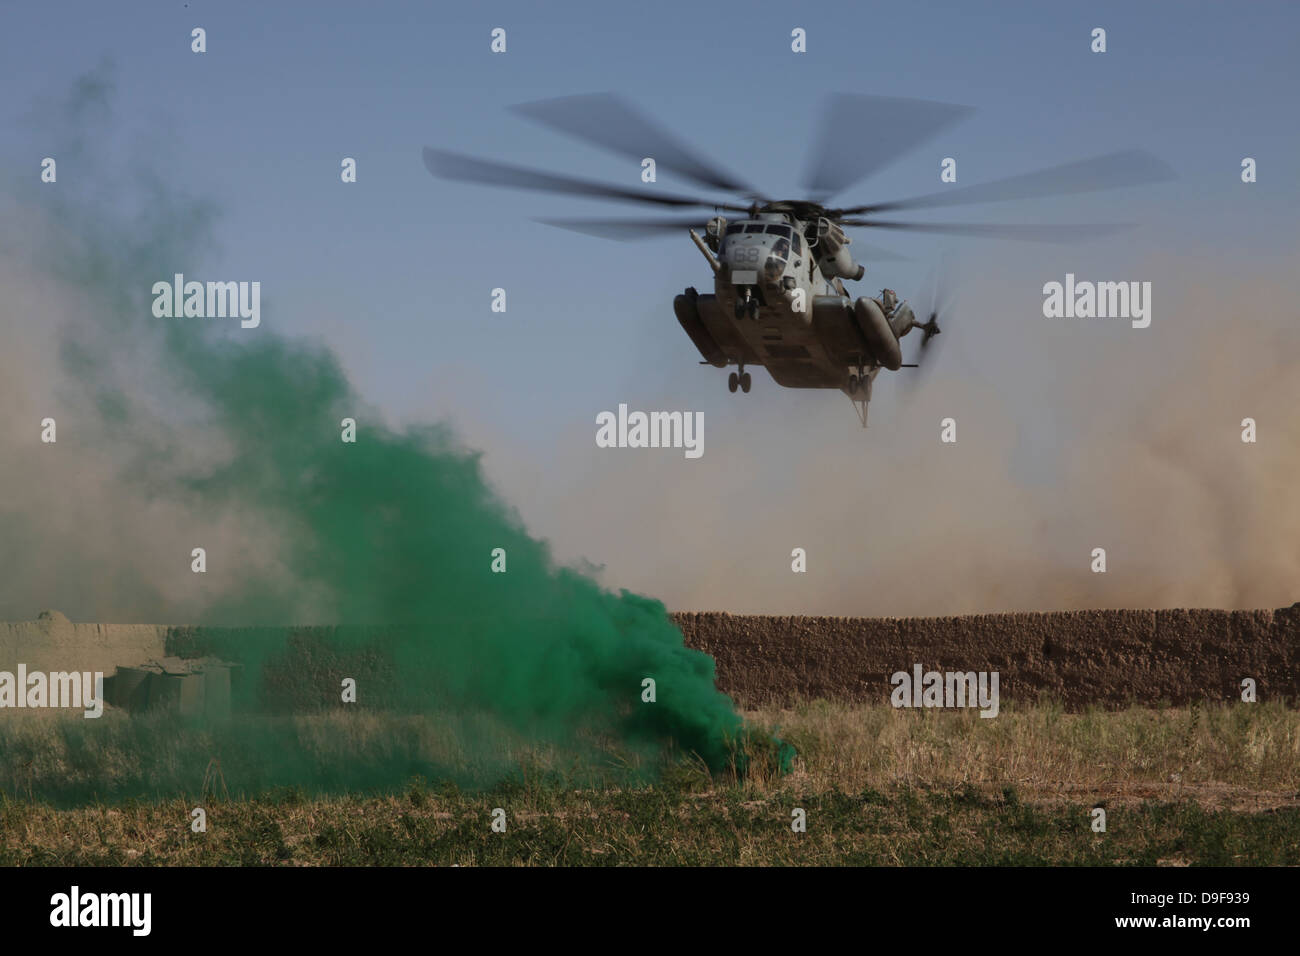 A CH-53 Super Stallion helicopter prepares to land in Afghanistan. - Stock Image